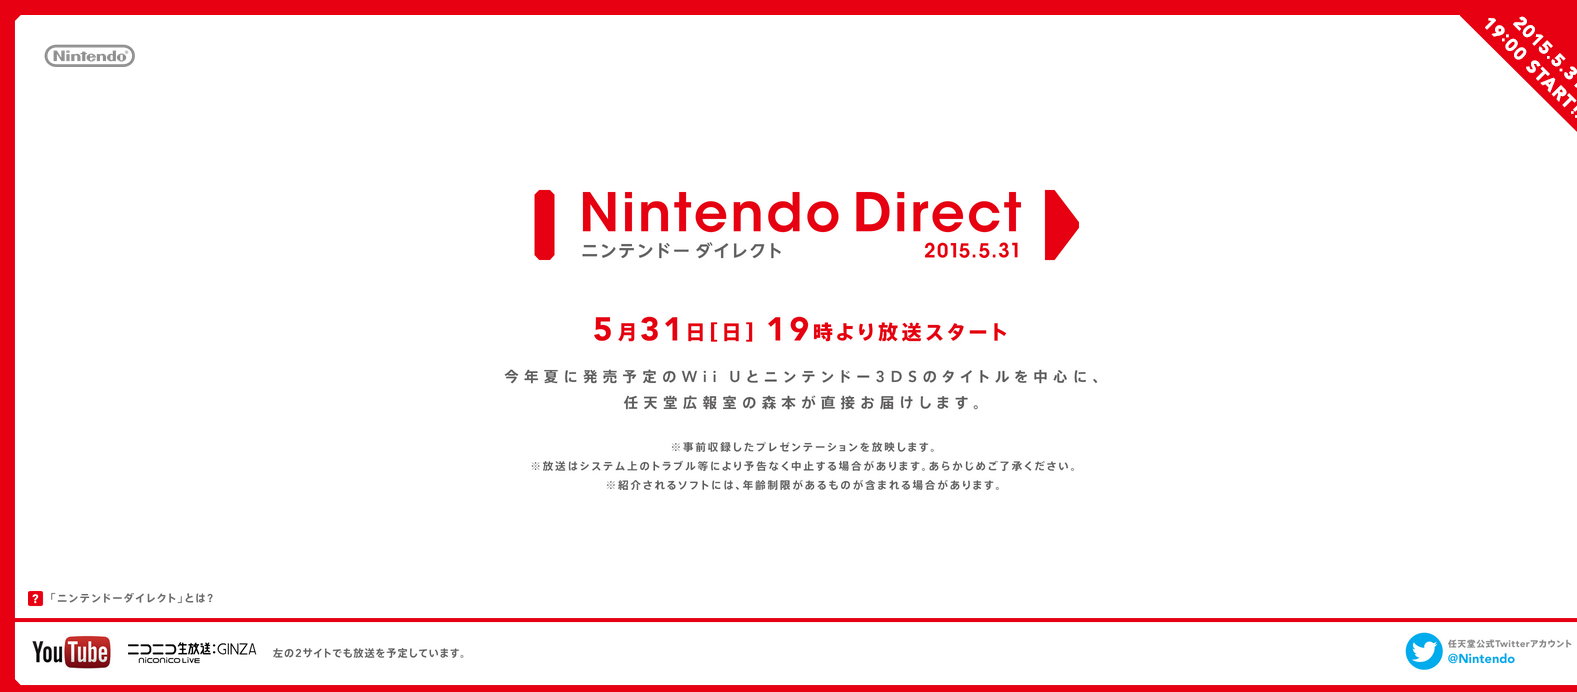 japanese nintendo direct announced for may 31 focusing on wii u 3ds